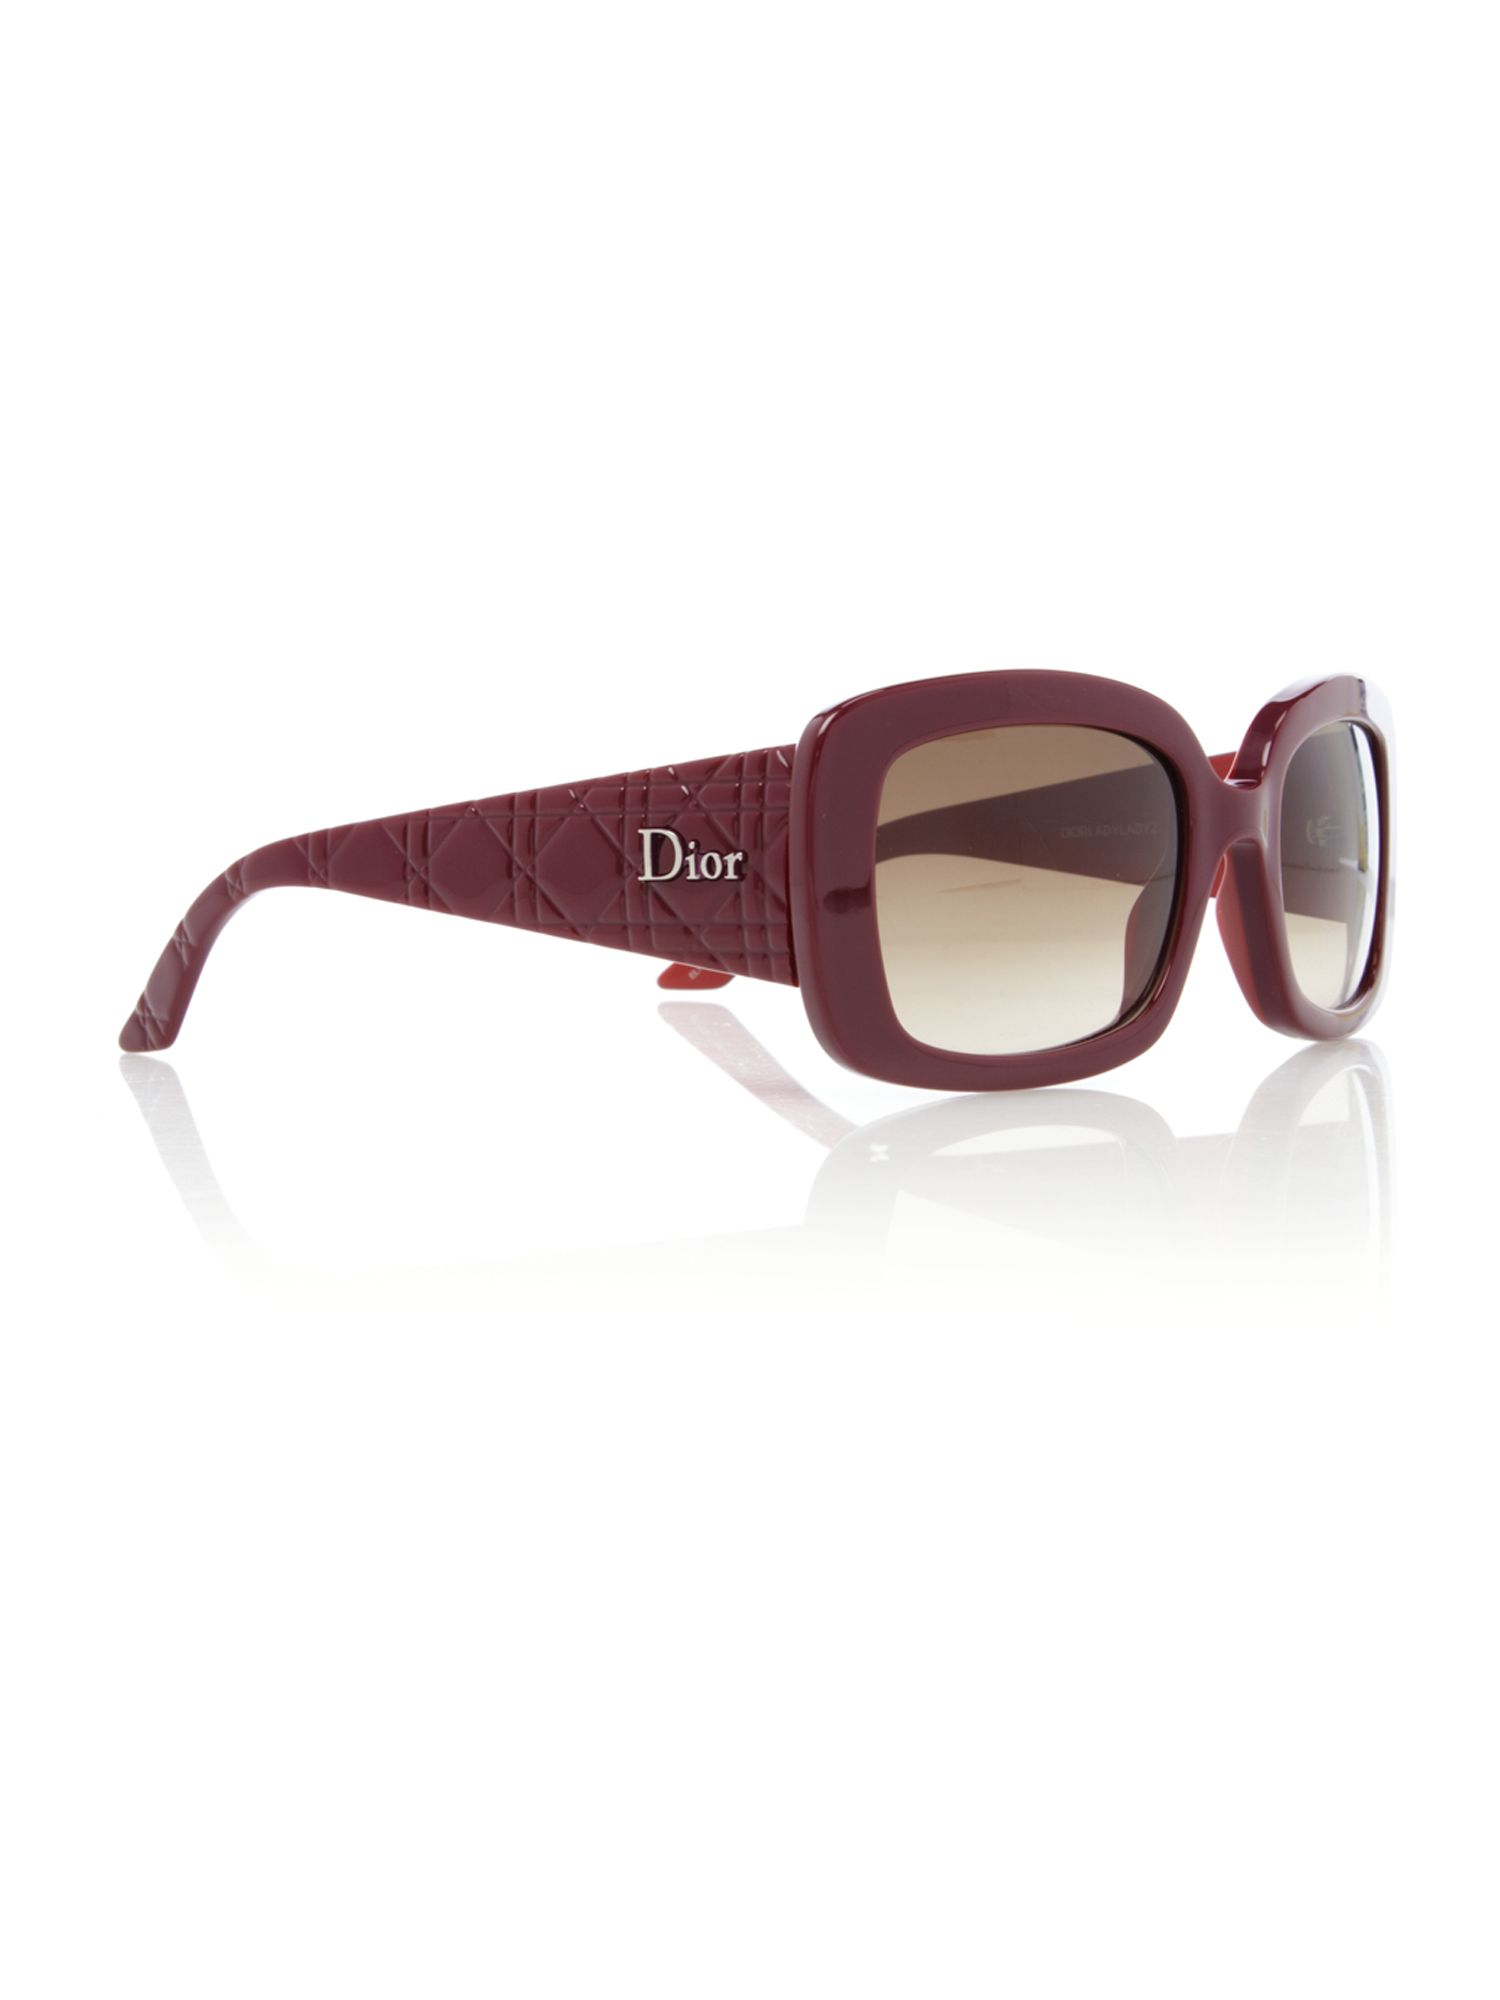 Ladies LadyLady2 Sunglasses